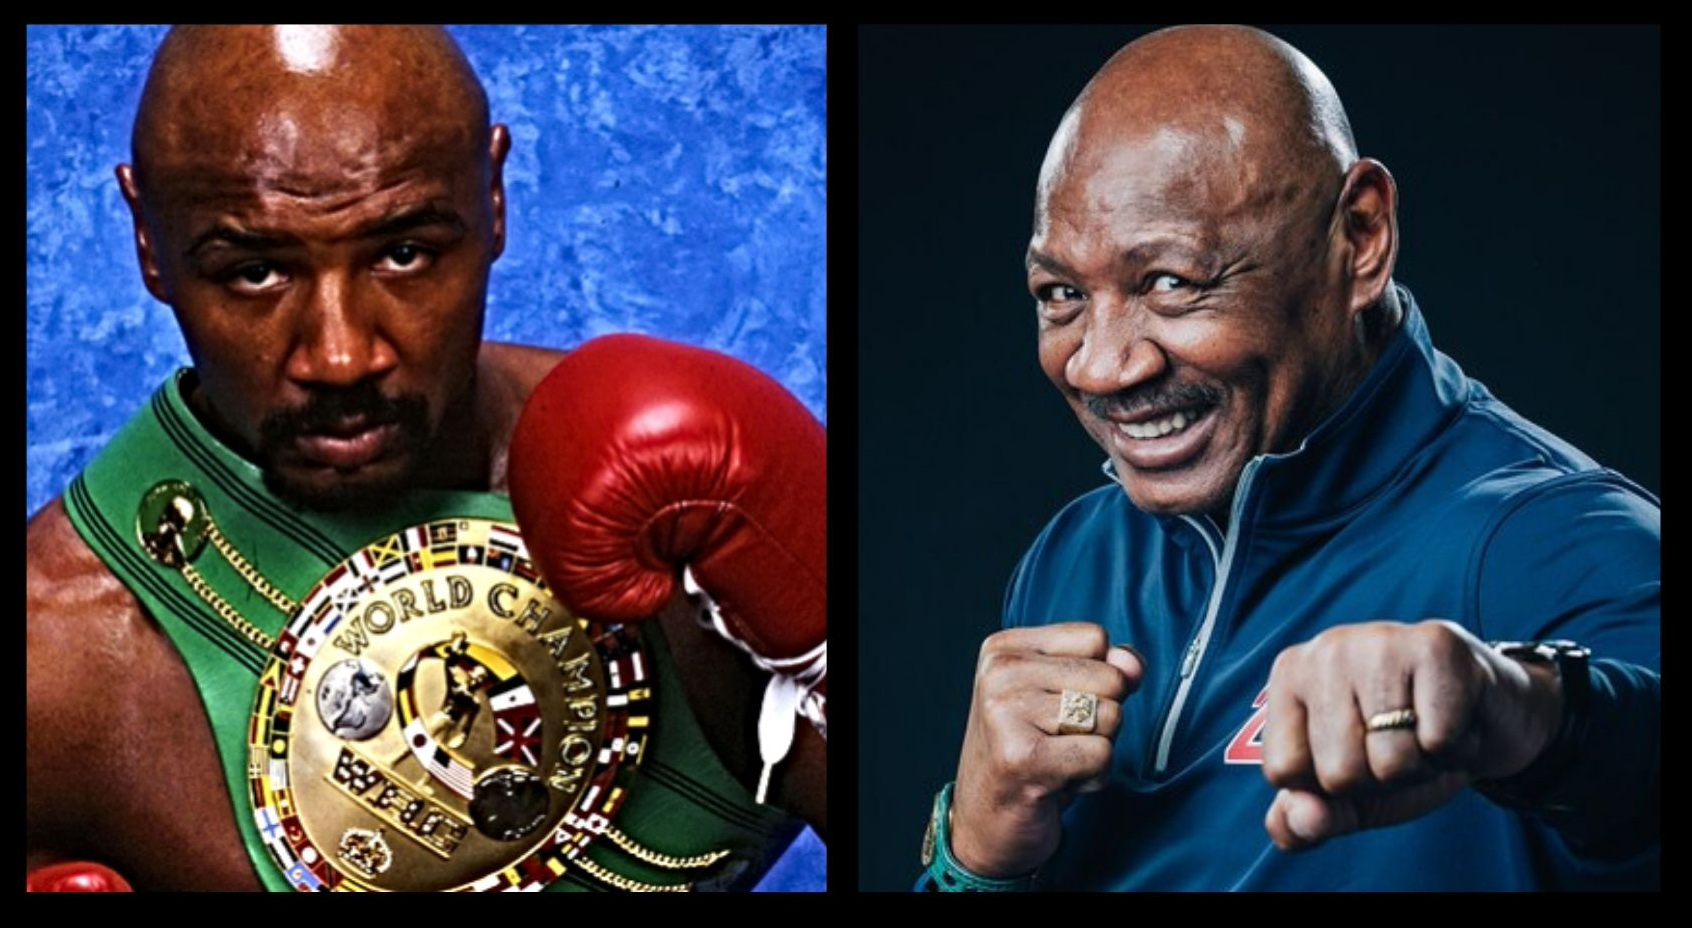 Boxing legend Marvin Hagler